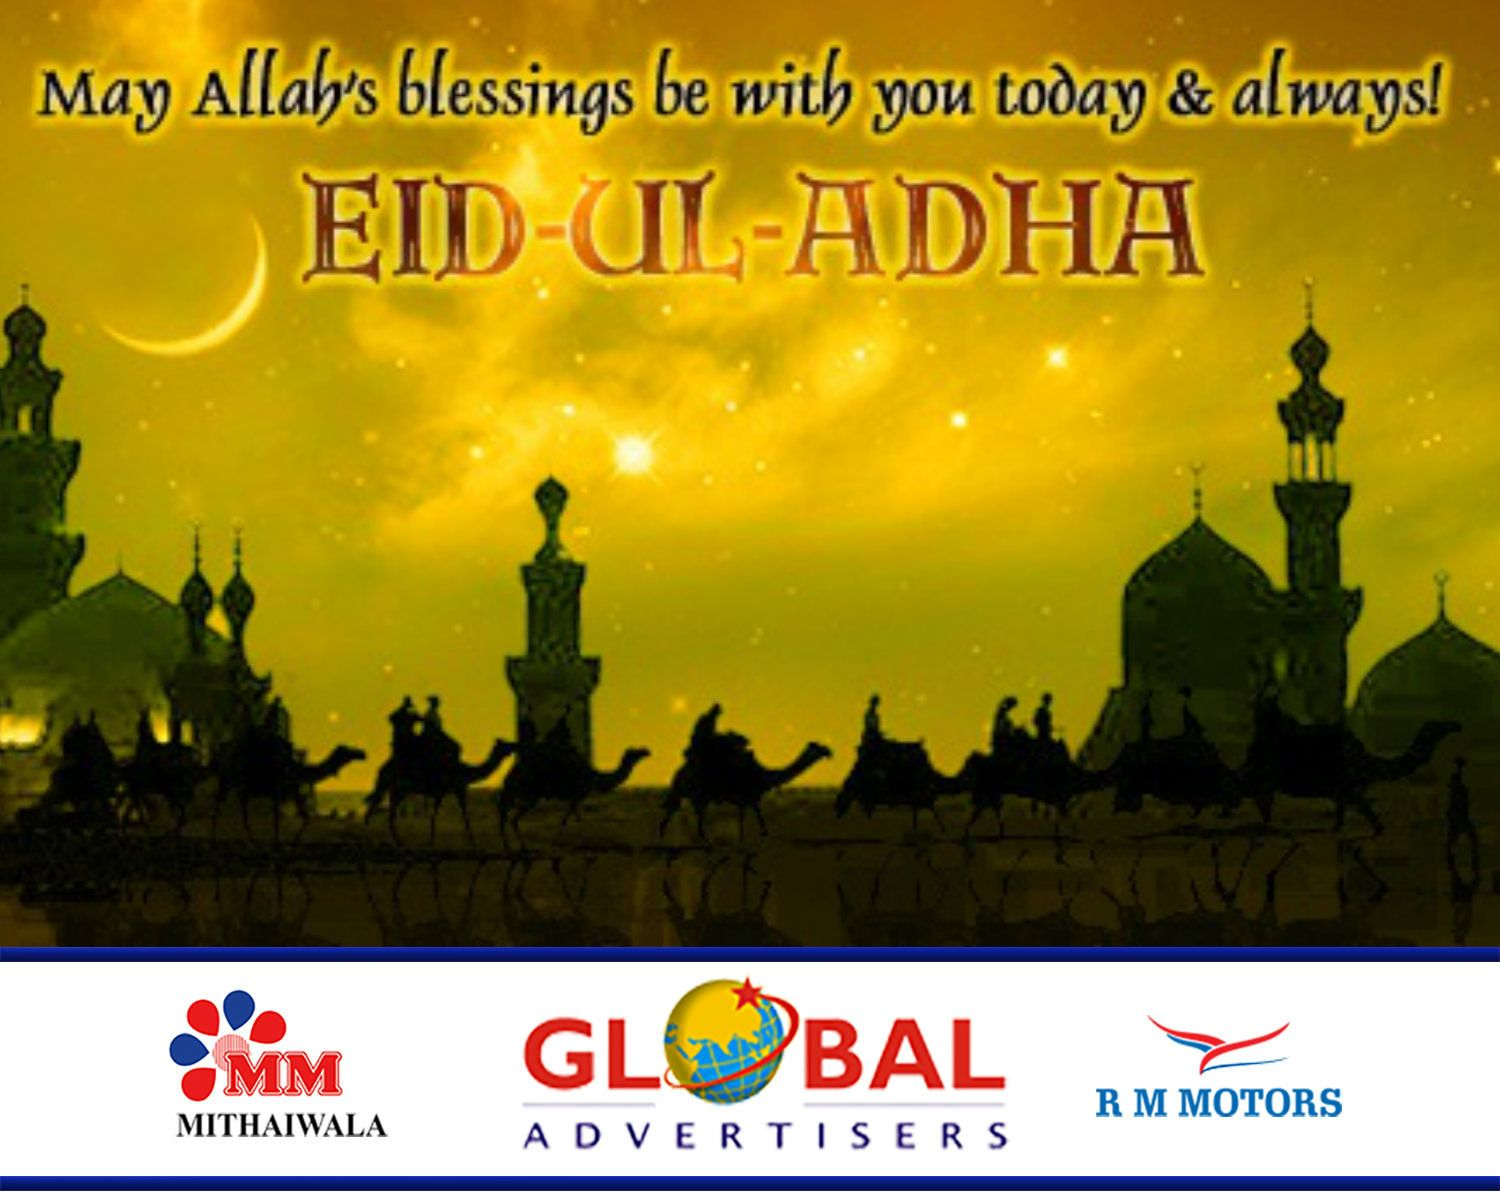 Greetings happy eid al adha to you and your family eidmubarak greetings happy eid al adha to you and your family eidmubarak kristyandbryce Choice Image